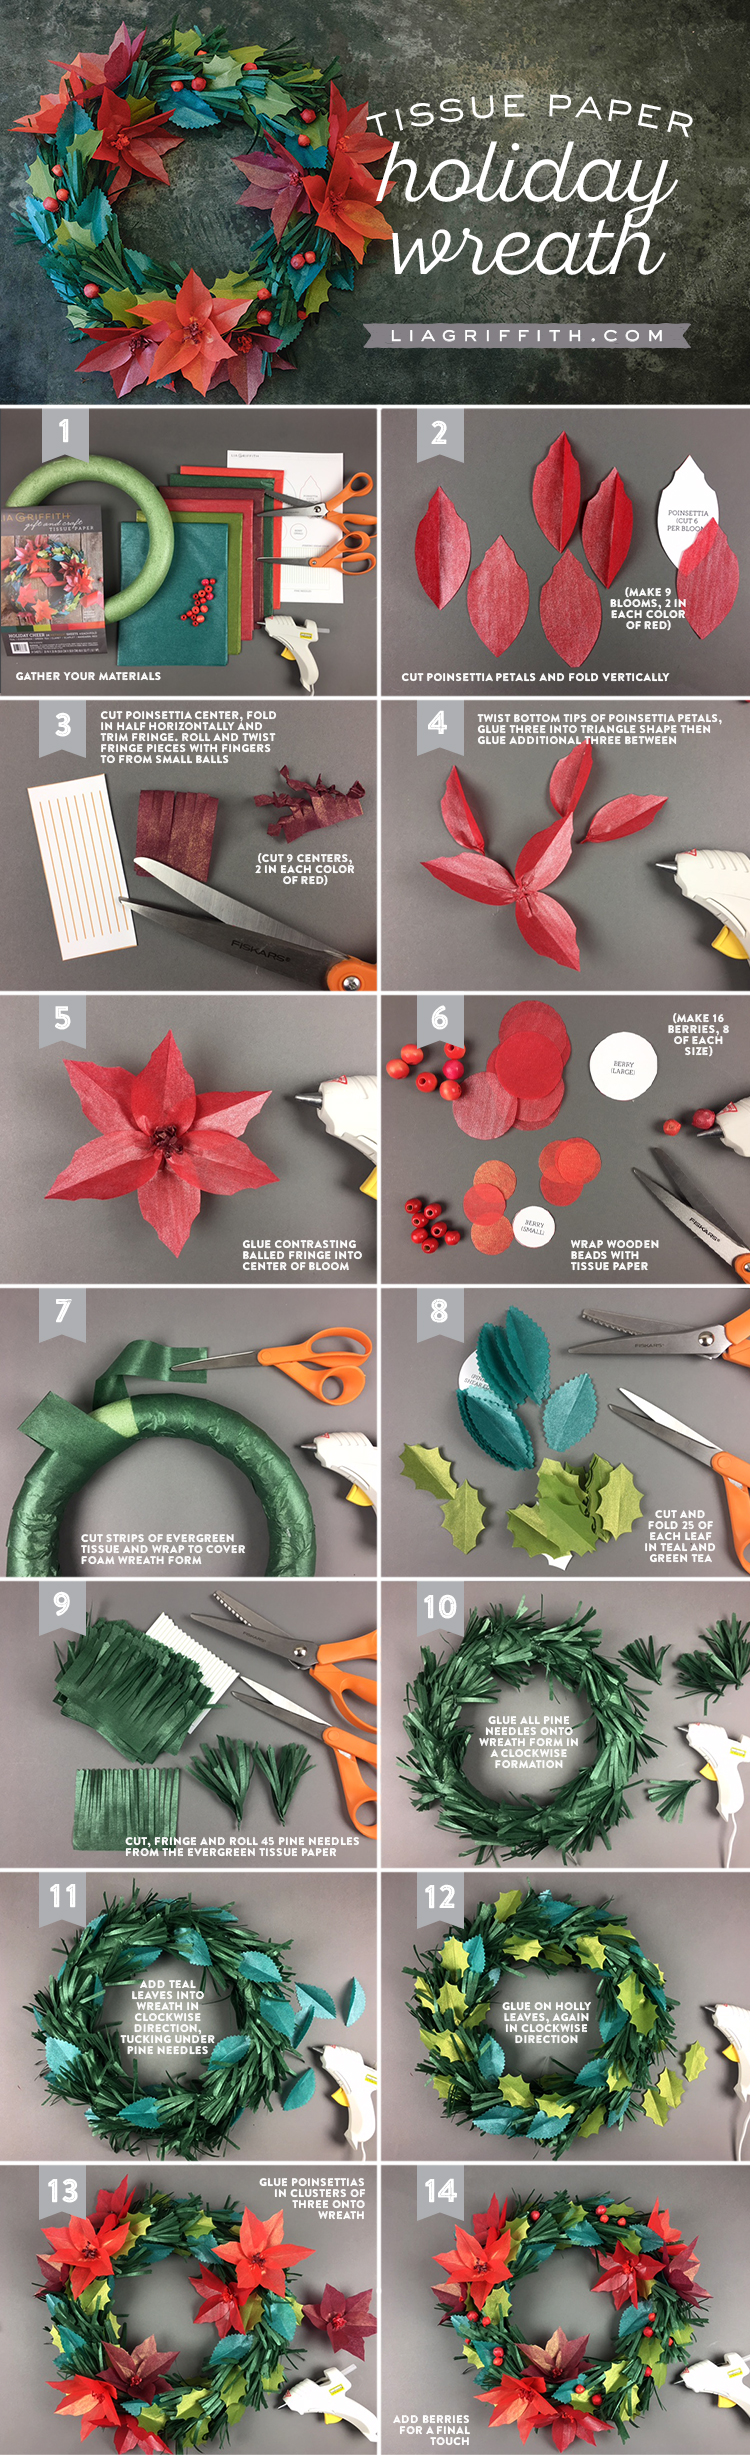 How to make a tissue paper Christmas wreath